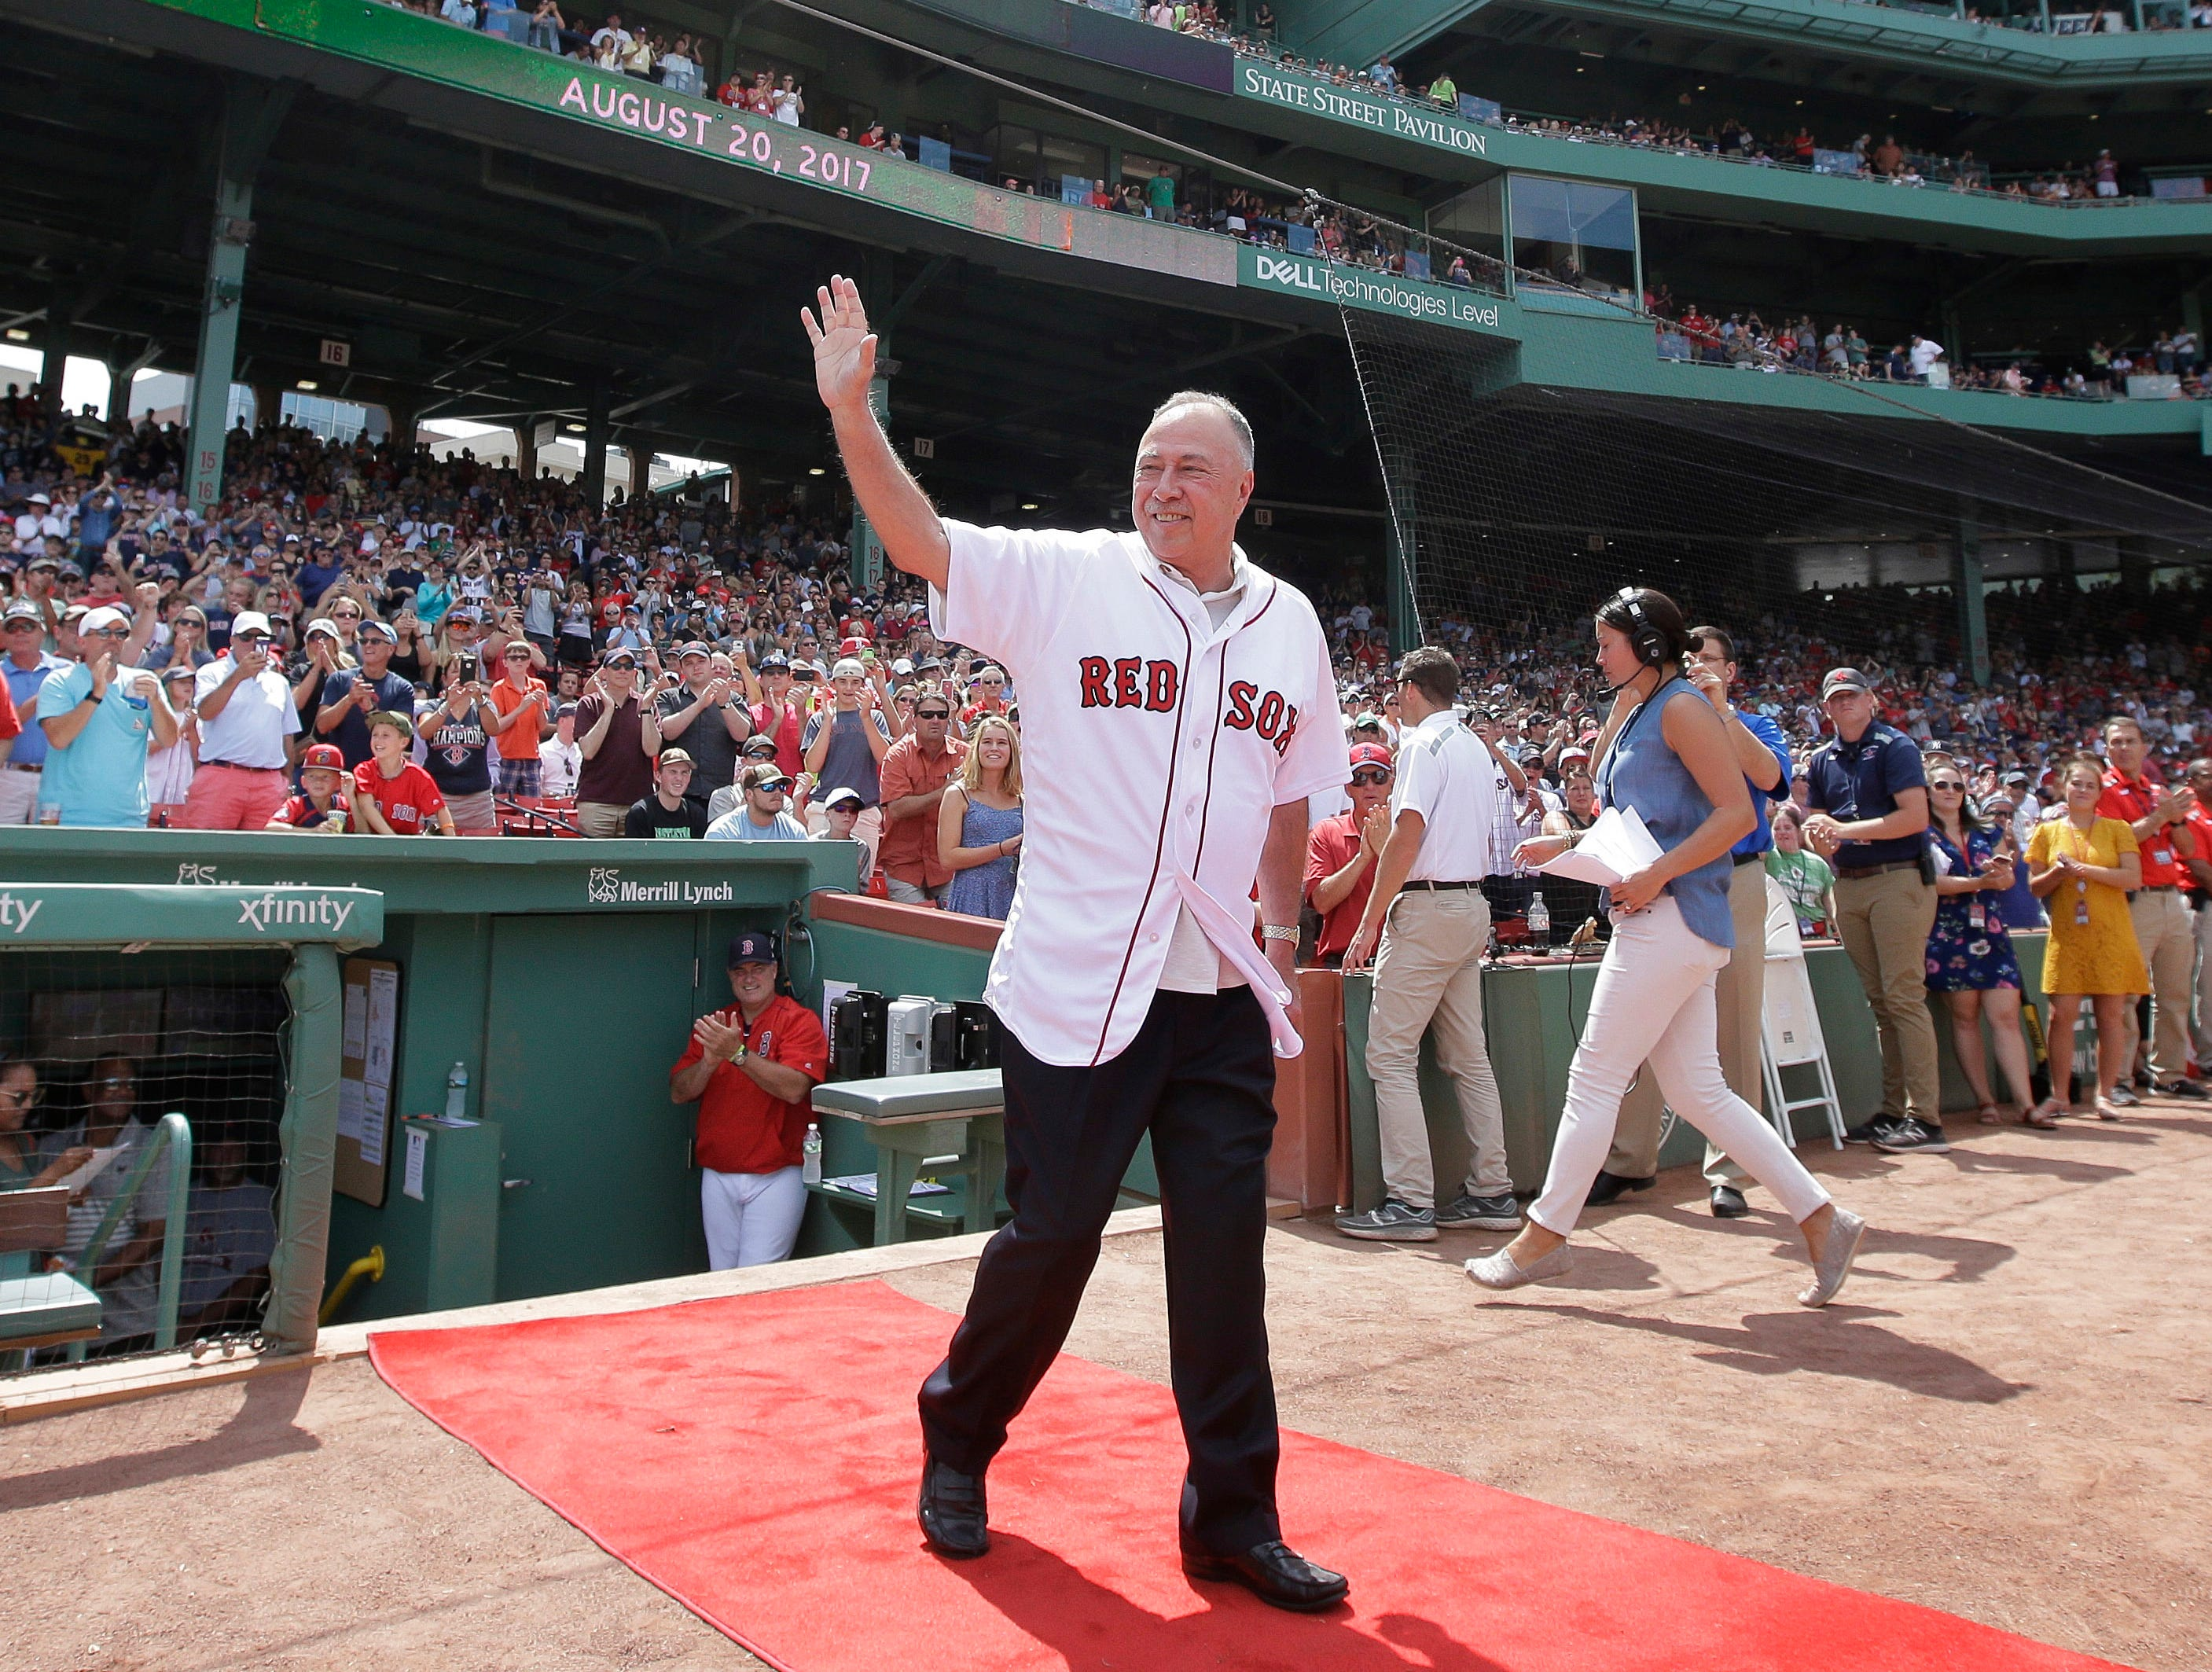 Red Sox broadcaster Jerry Remy faces another cancer diagnosis